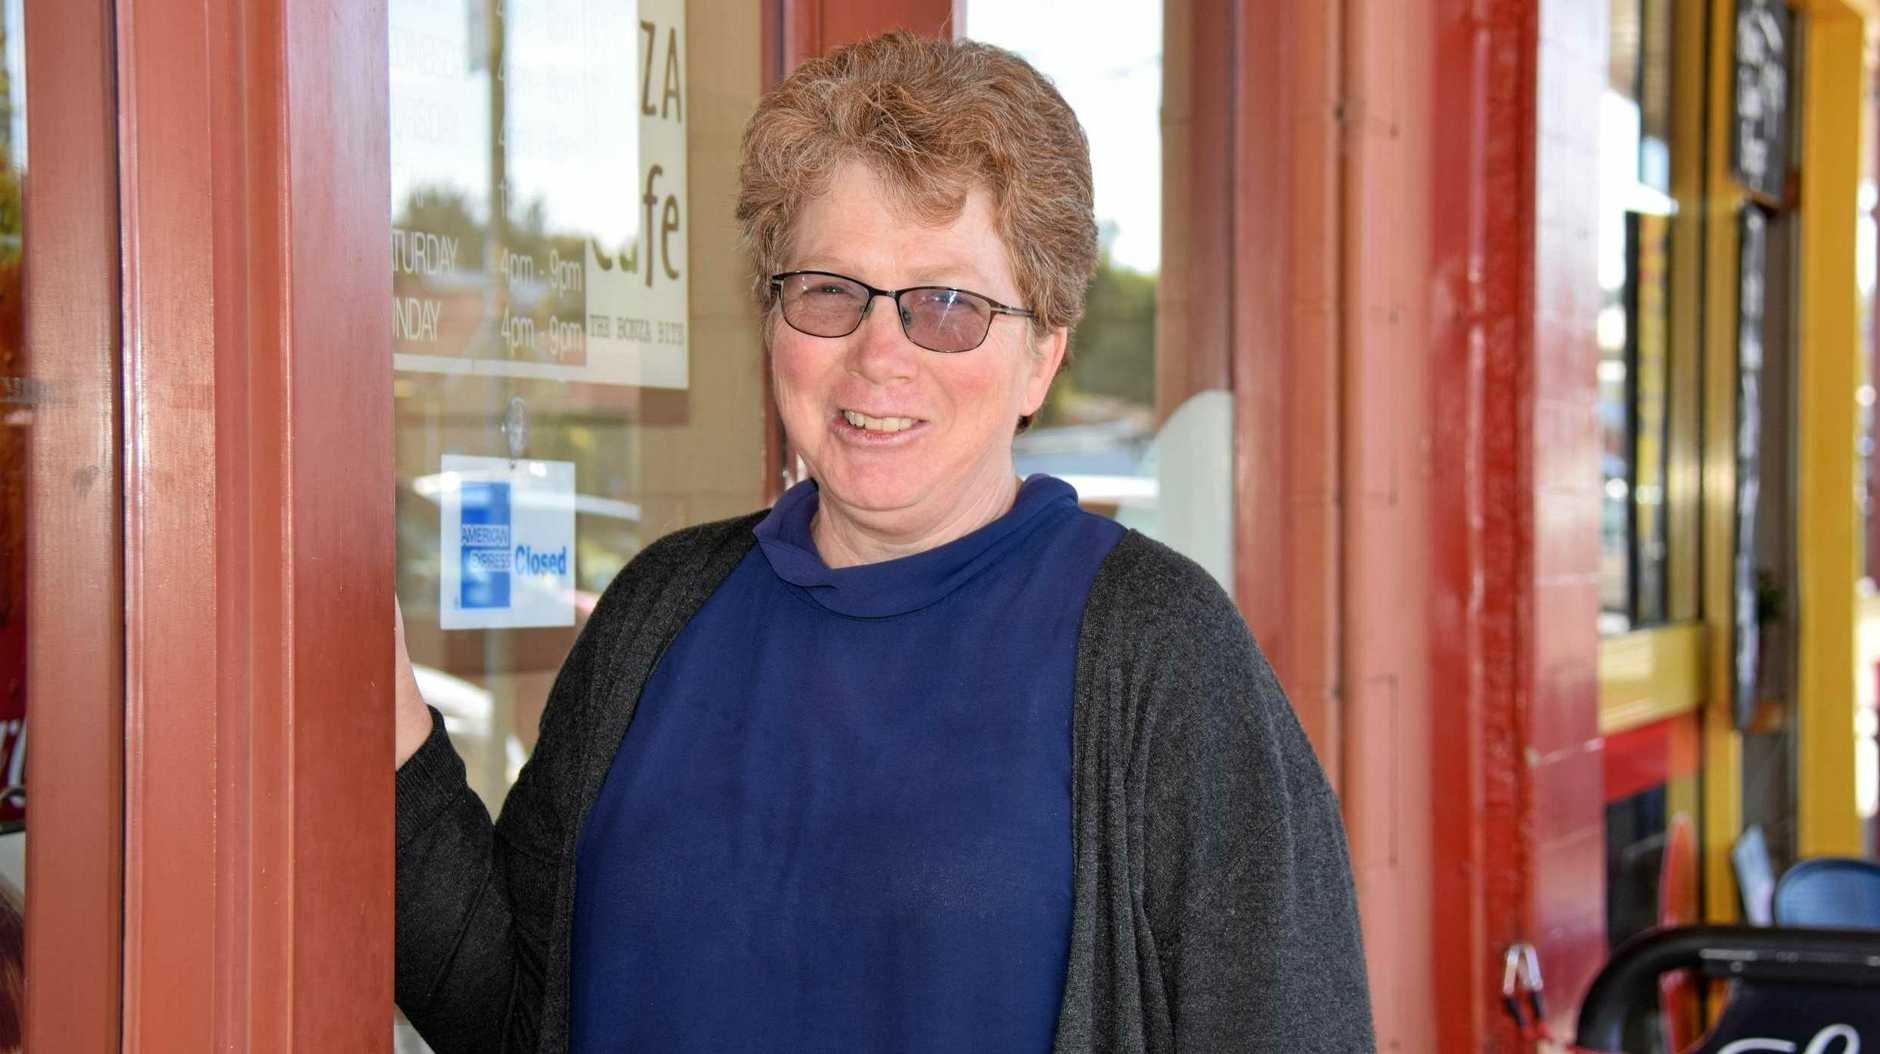 Q & A: Former Aussie's Pizza owner, Dianne Smith was given some valuable life advice.